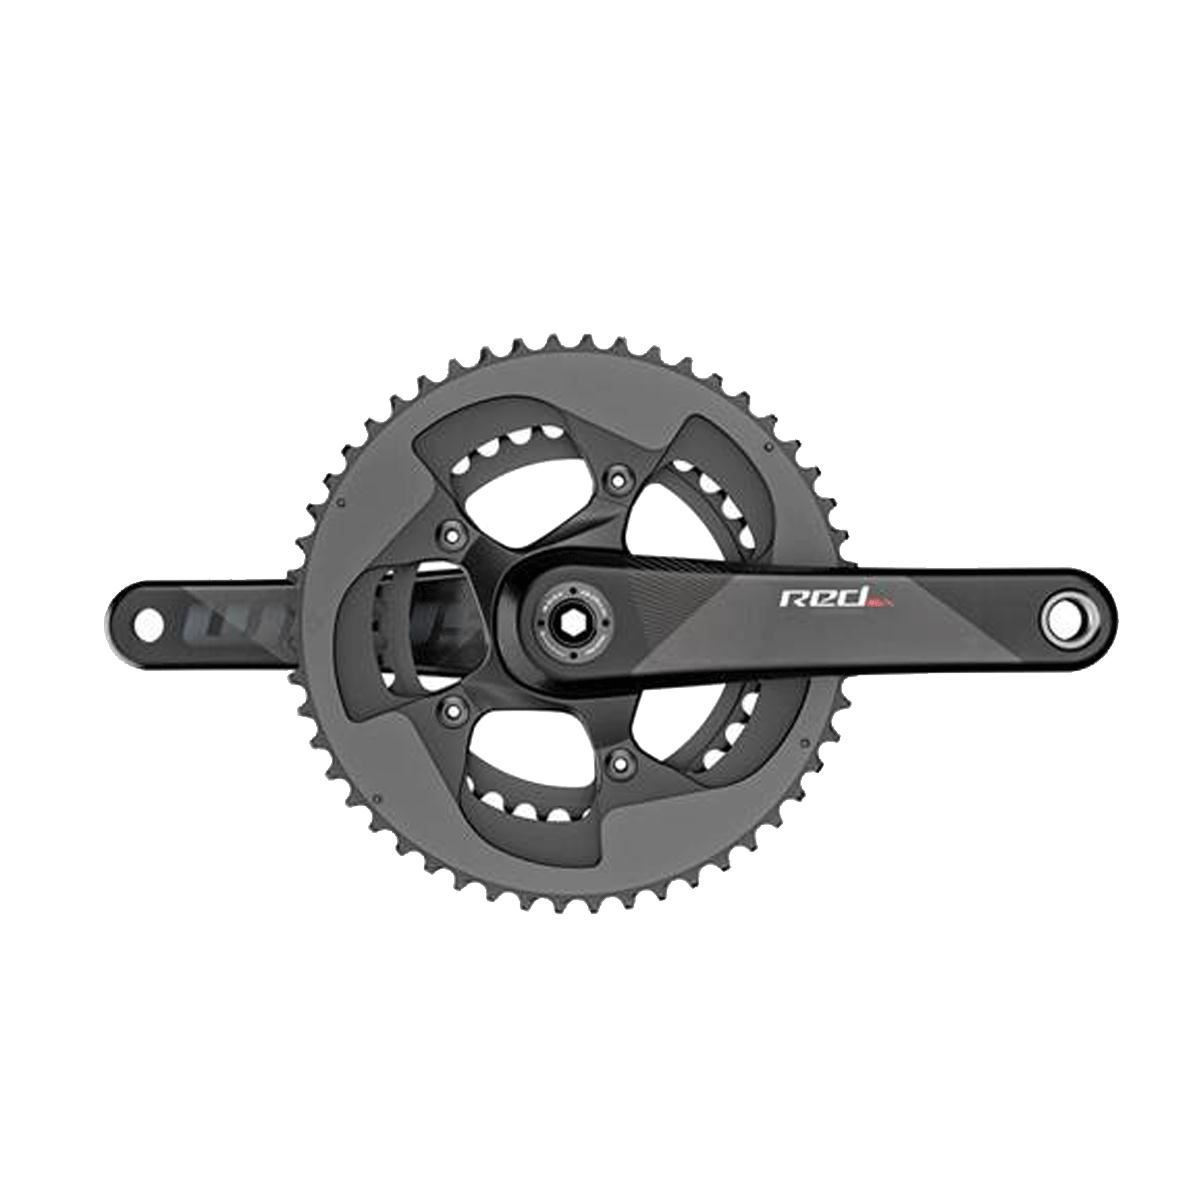 Sram Crank Set Red Exogram Bb386 172.5 53-39 Bearings Not Included:  172.5Mm